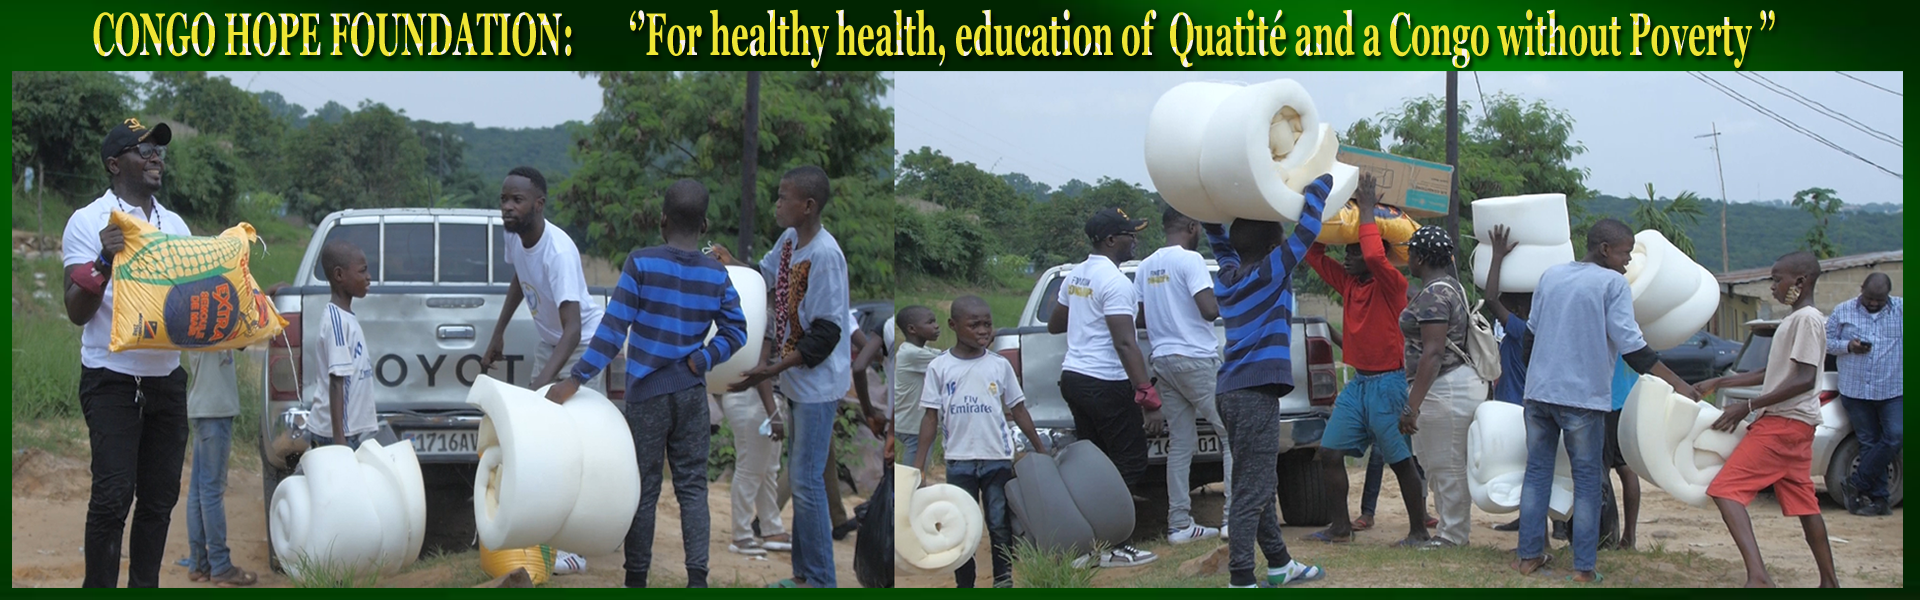 Let's help our children to have a quality education...